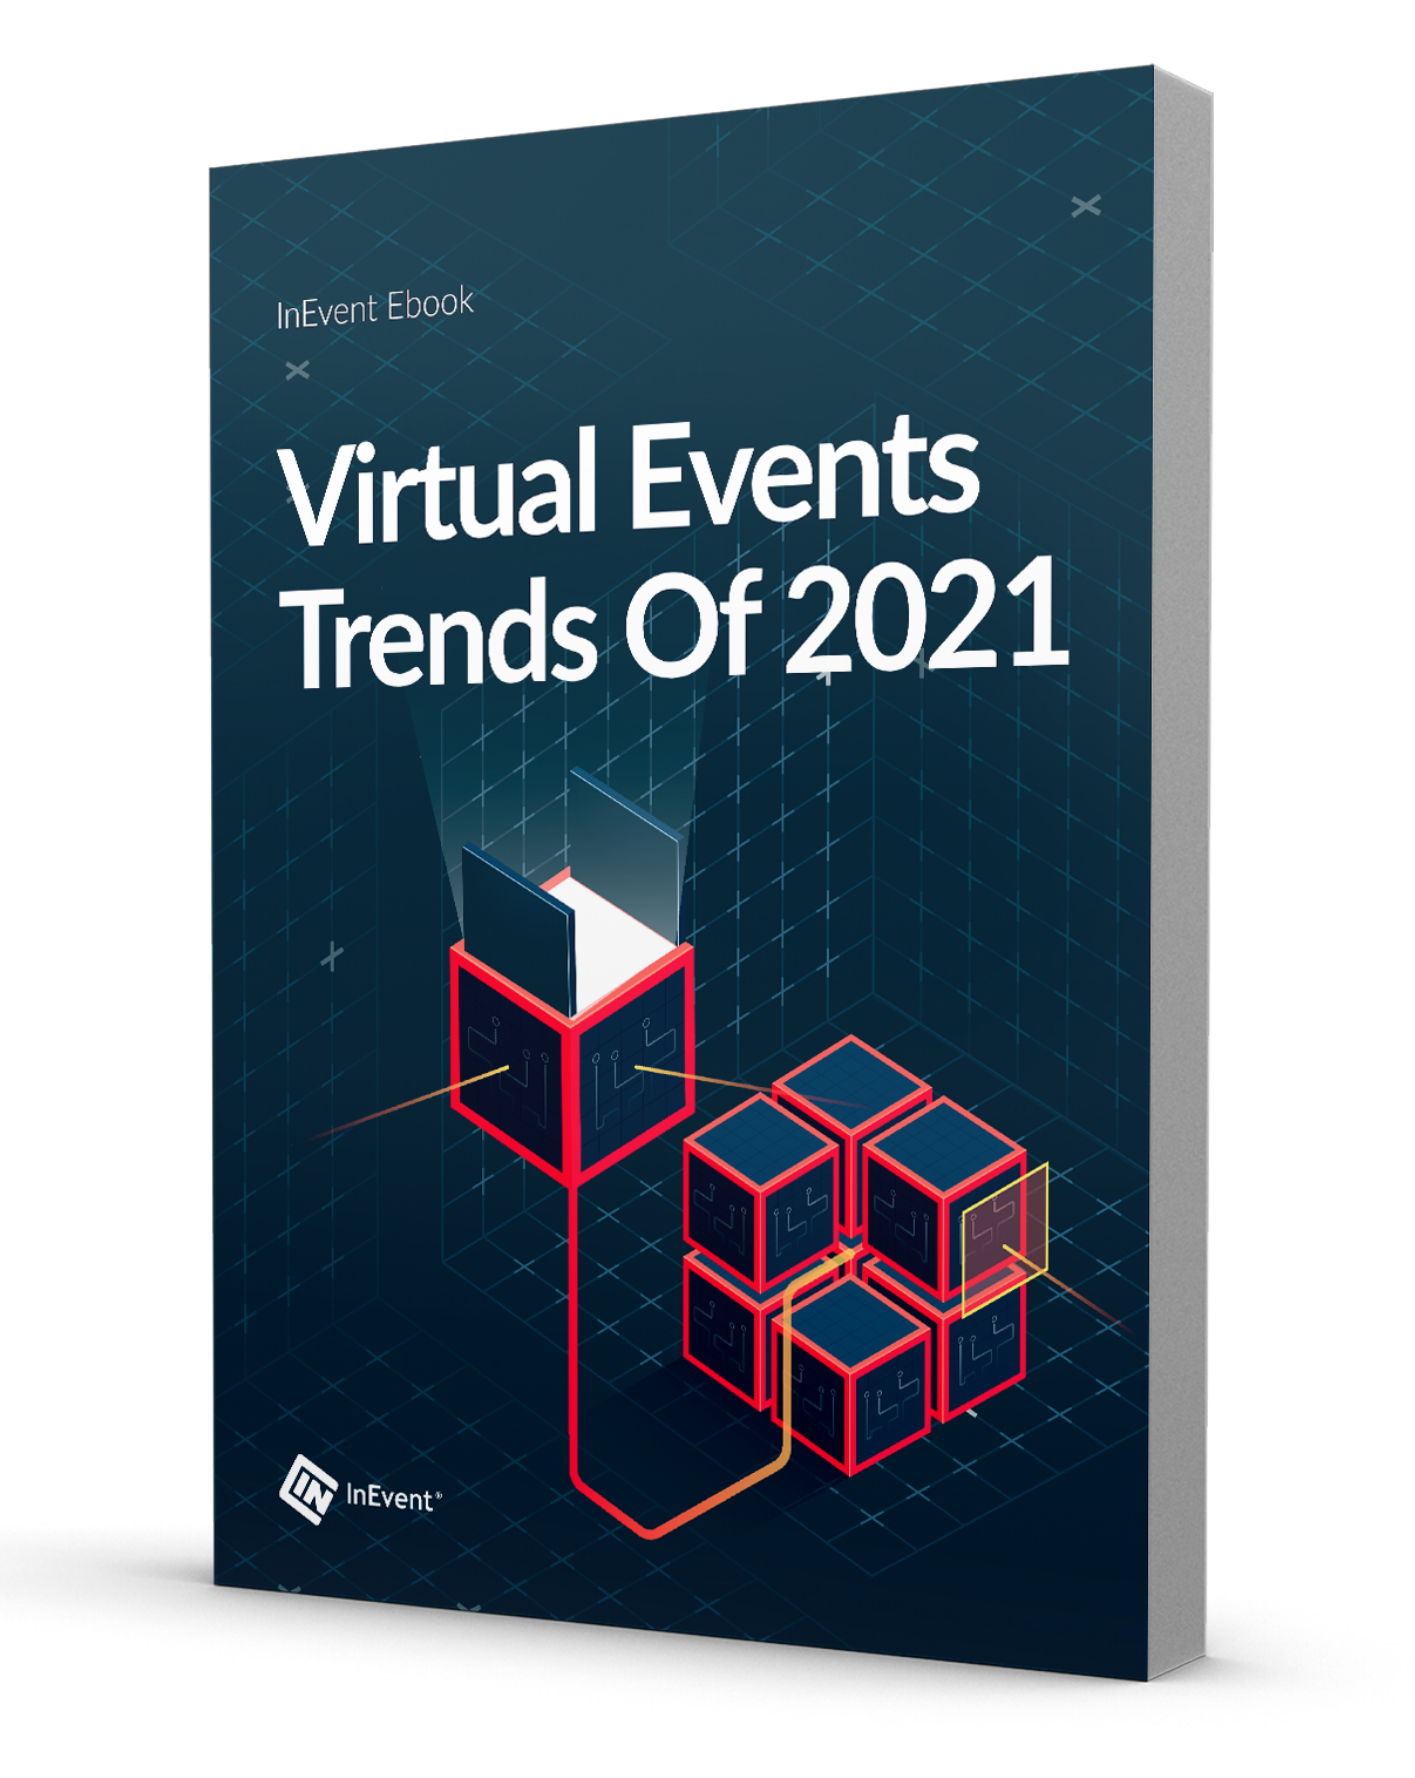 Ebook_-_Virtual_Events_Trends_of_2021